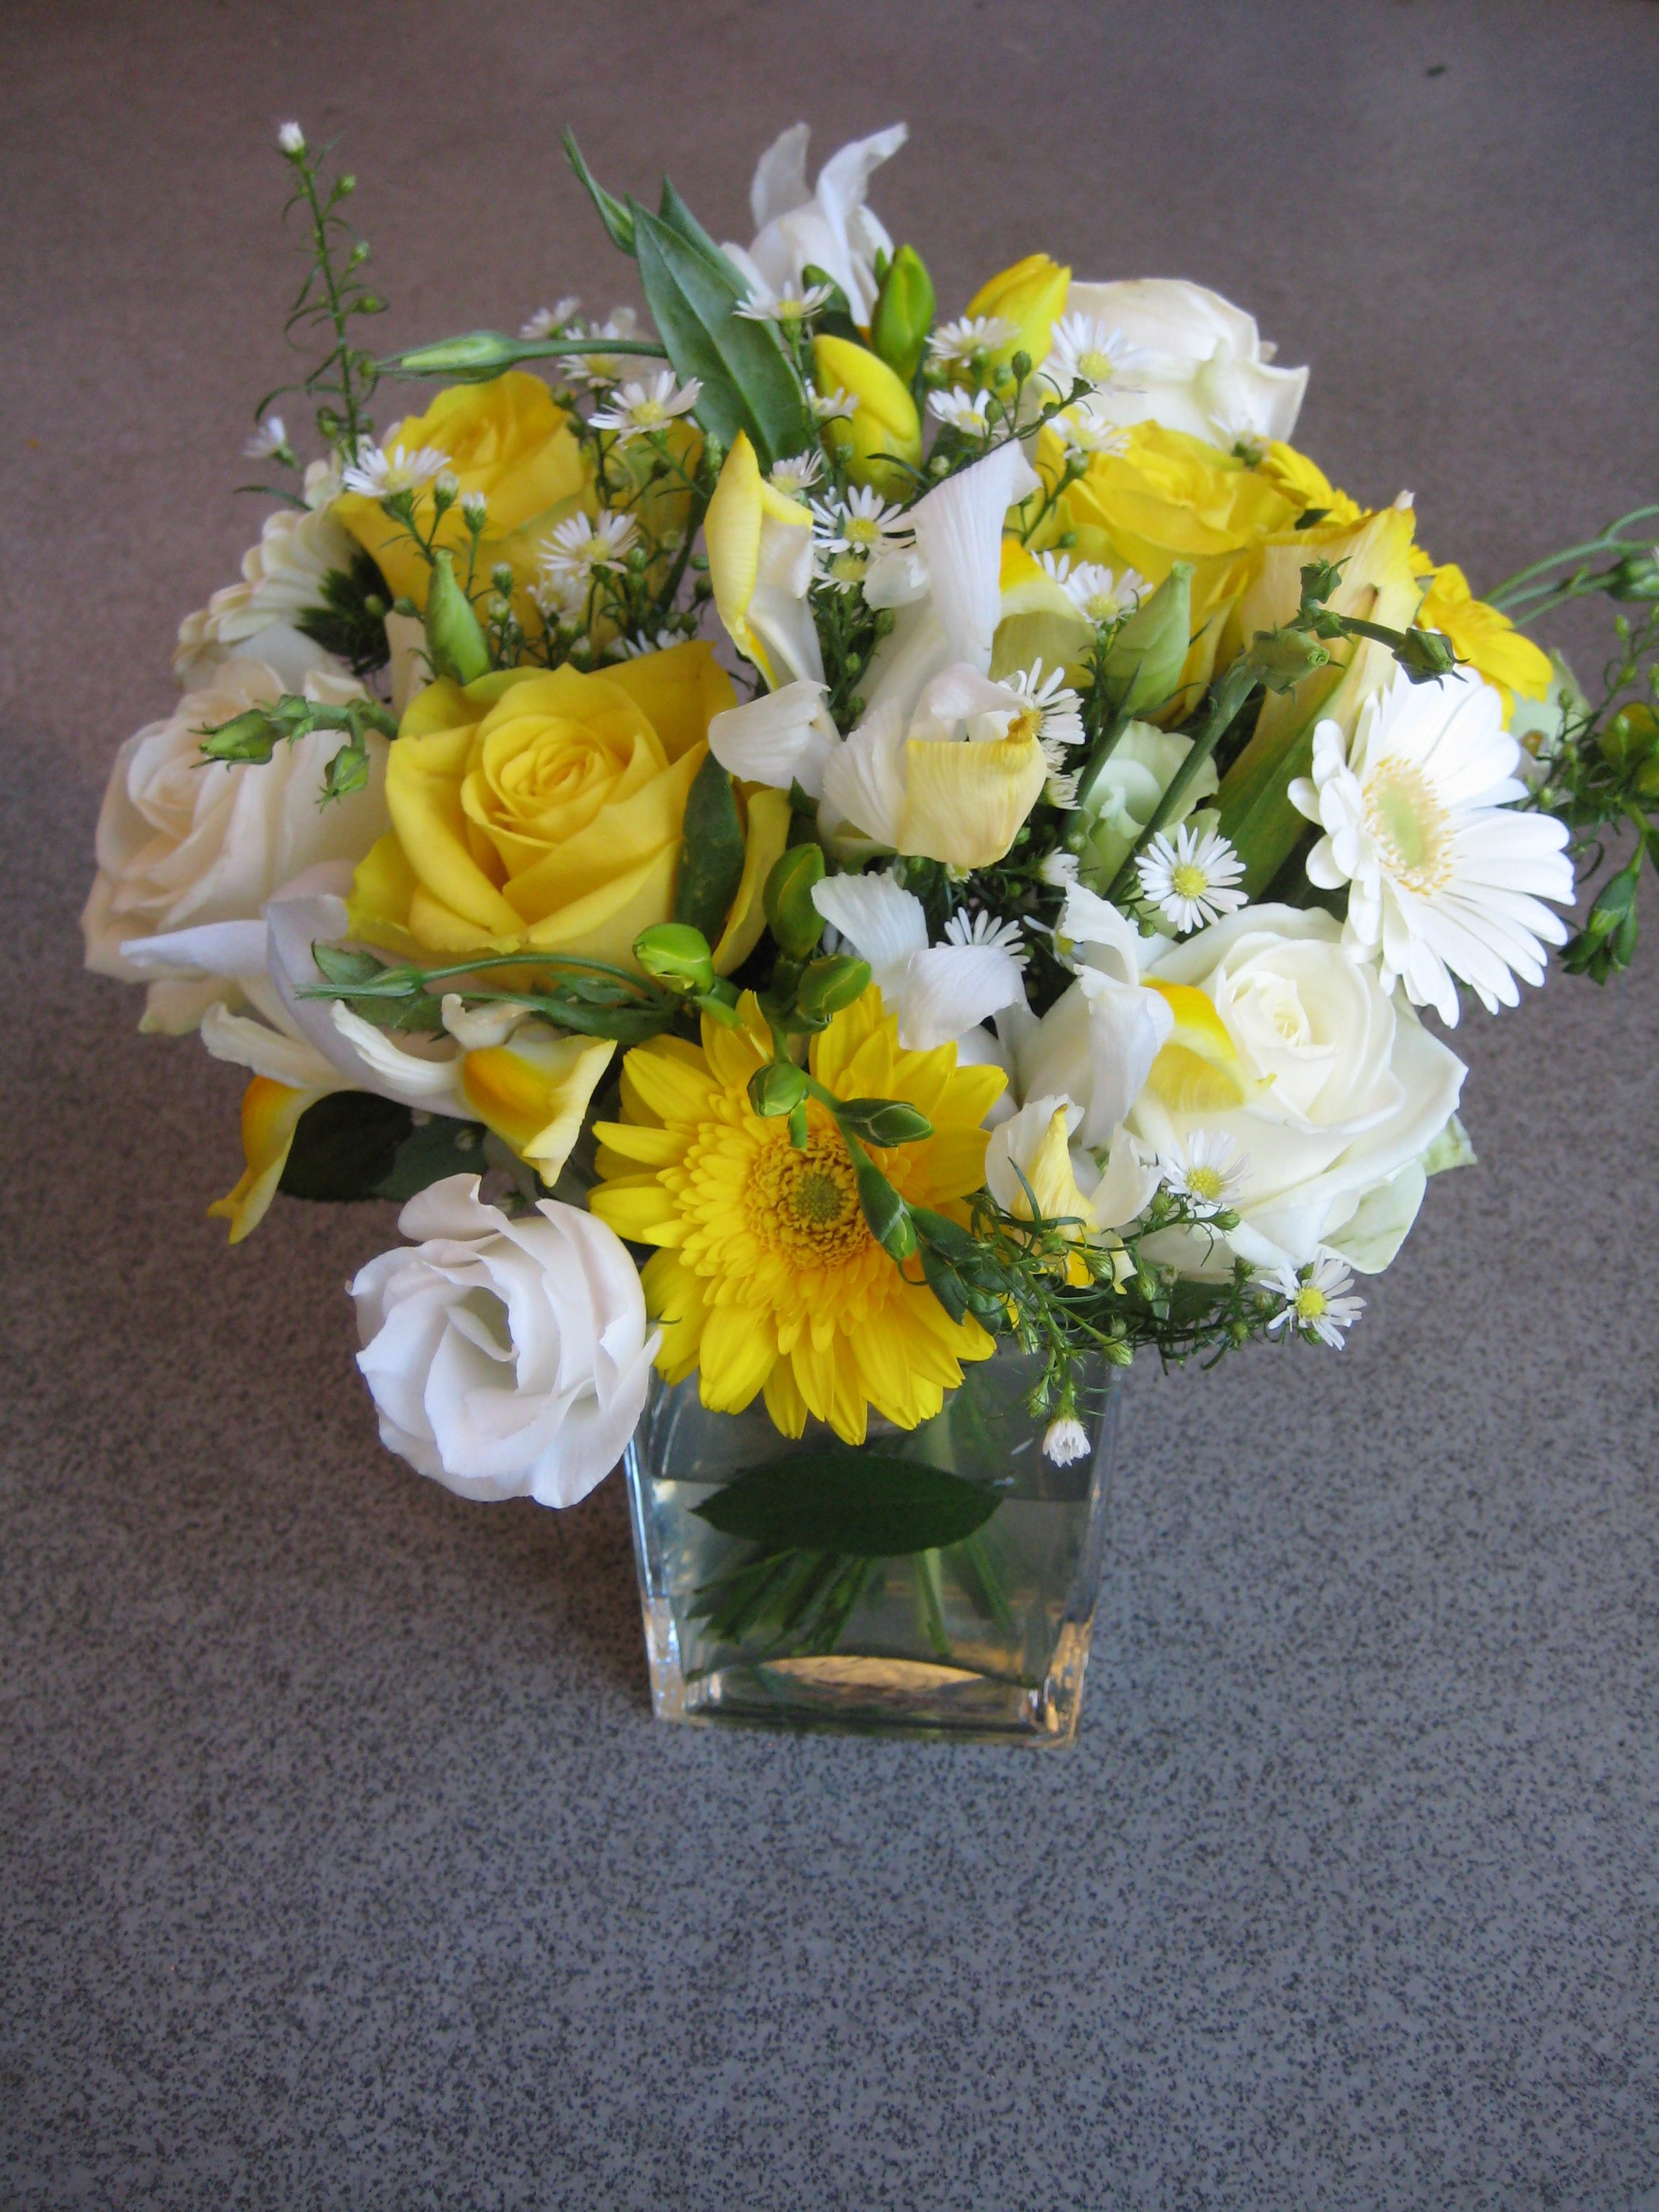 A passionflower table centrepiece in yellows and whites